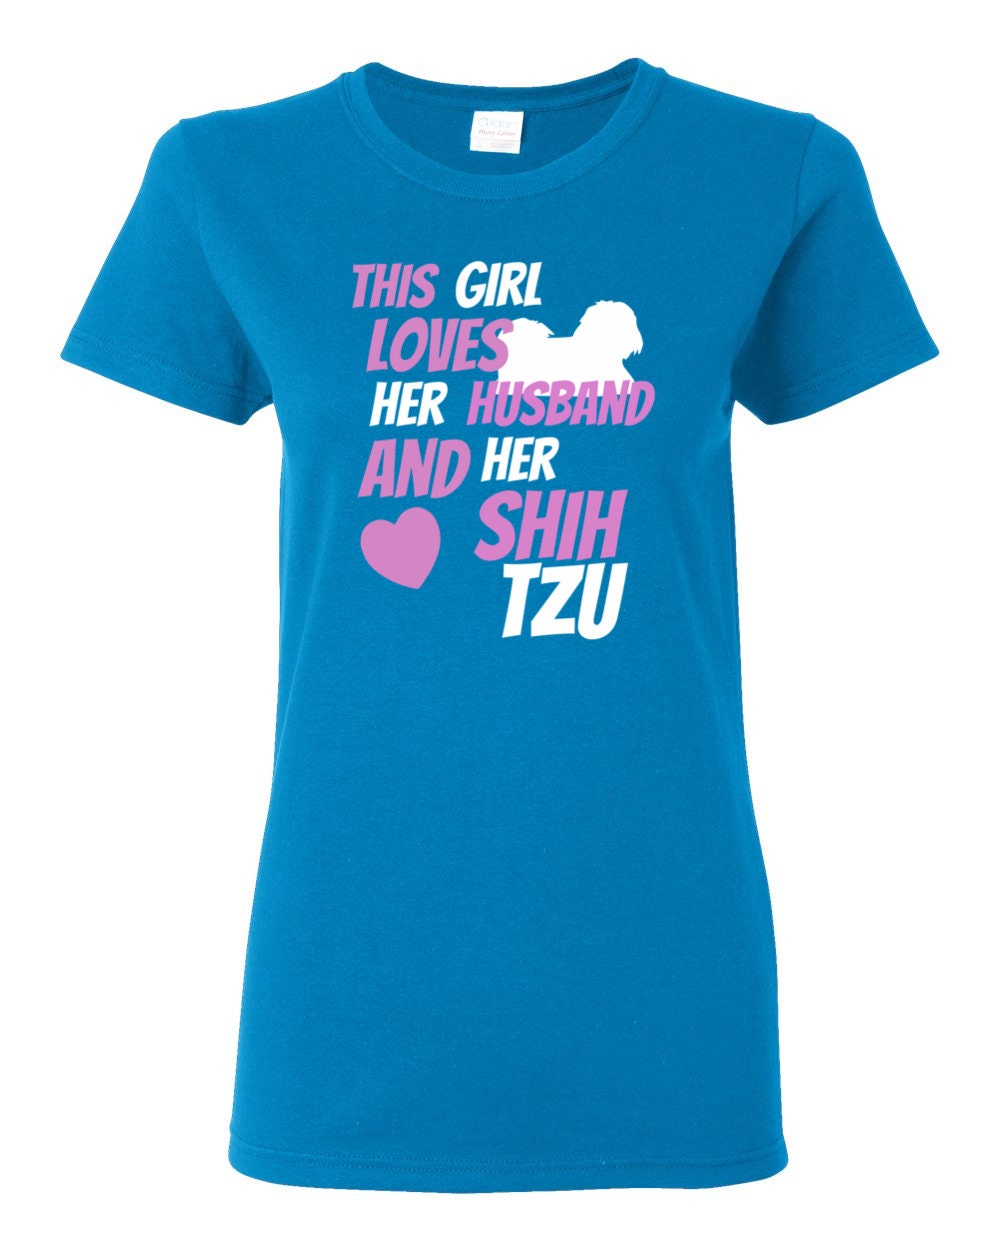 Shih Tzu T-shirt - This Girl Loves Her Husband And Her Shih Tzu - Only Shih Tzus Womens T-shirt